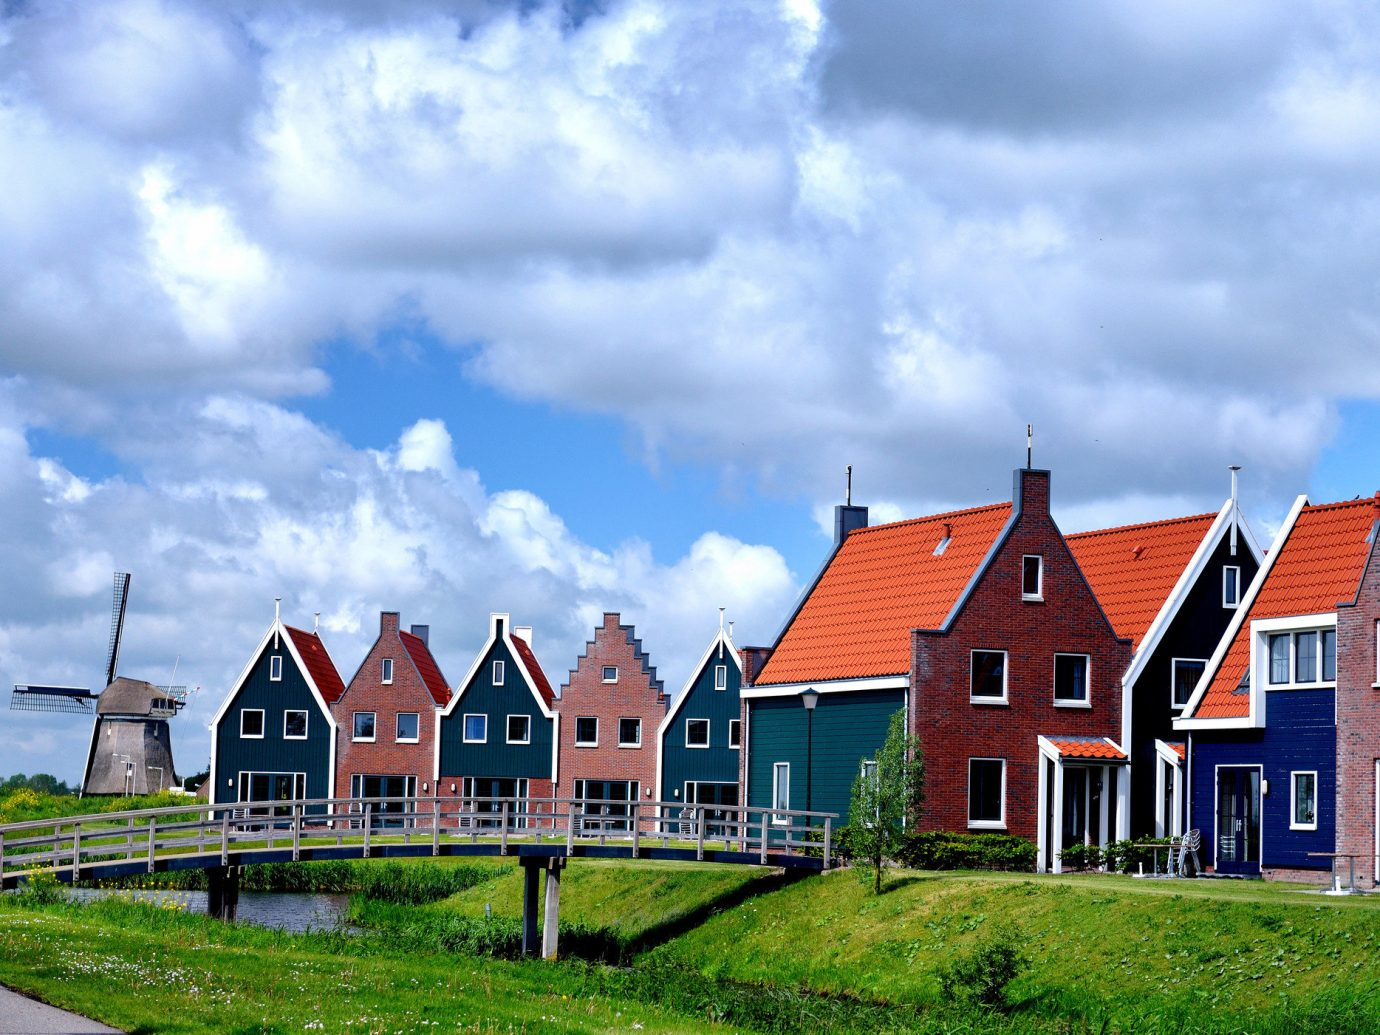 Trip Ideas grass sky house outdoor building home property cloud cottage residential area old brick rural area real estate Farm estate green farmhouse oast suburb land lot Village landscape residential grassy Town lush hillside